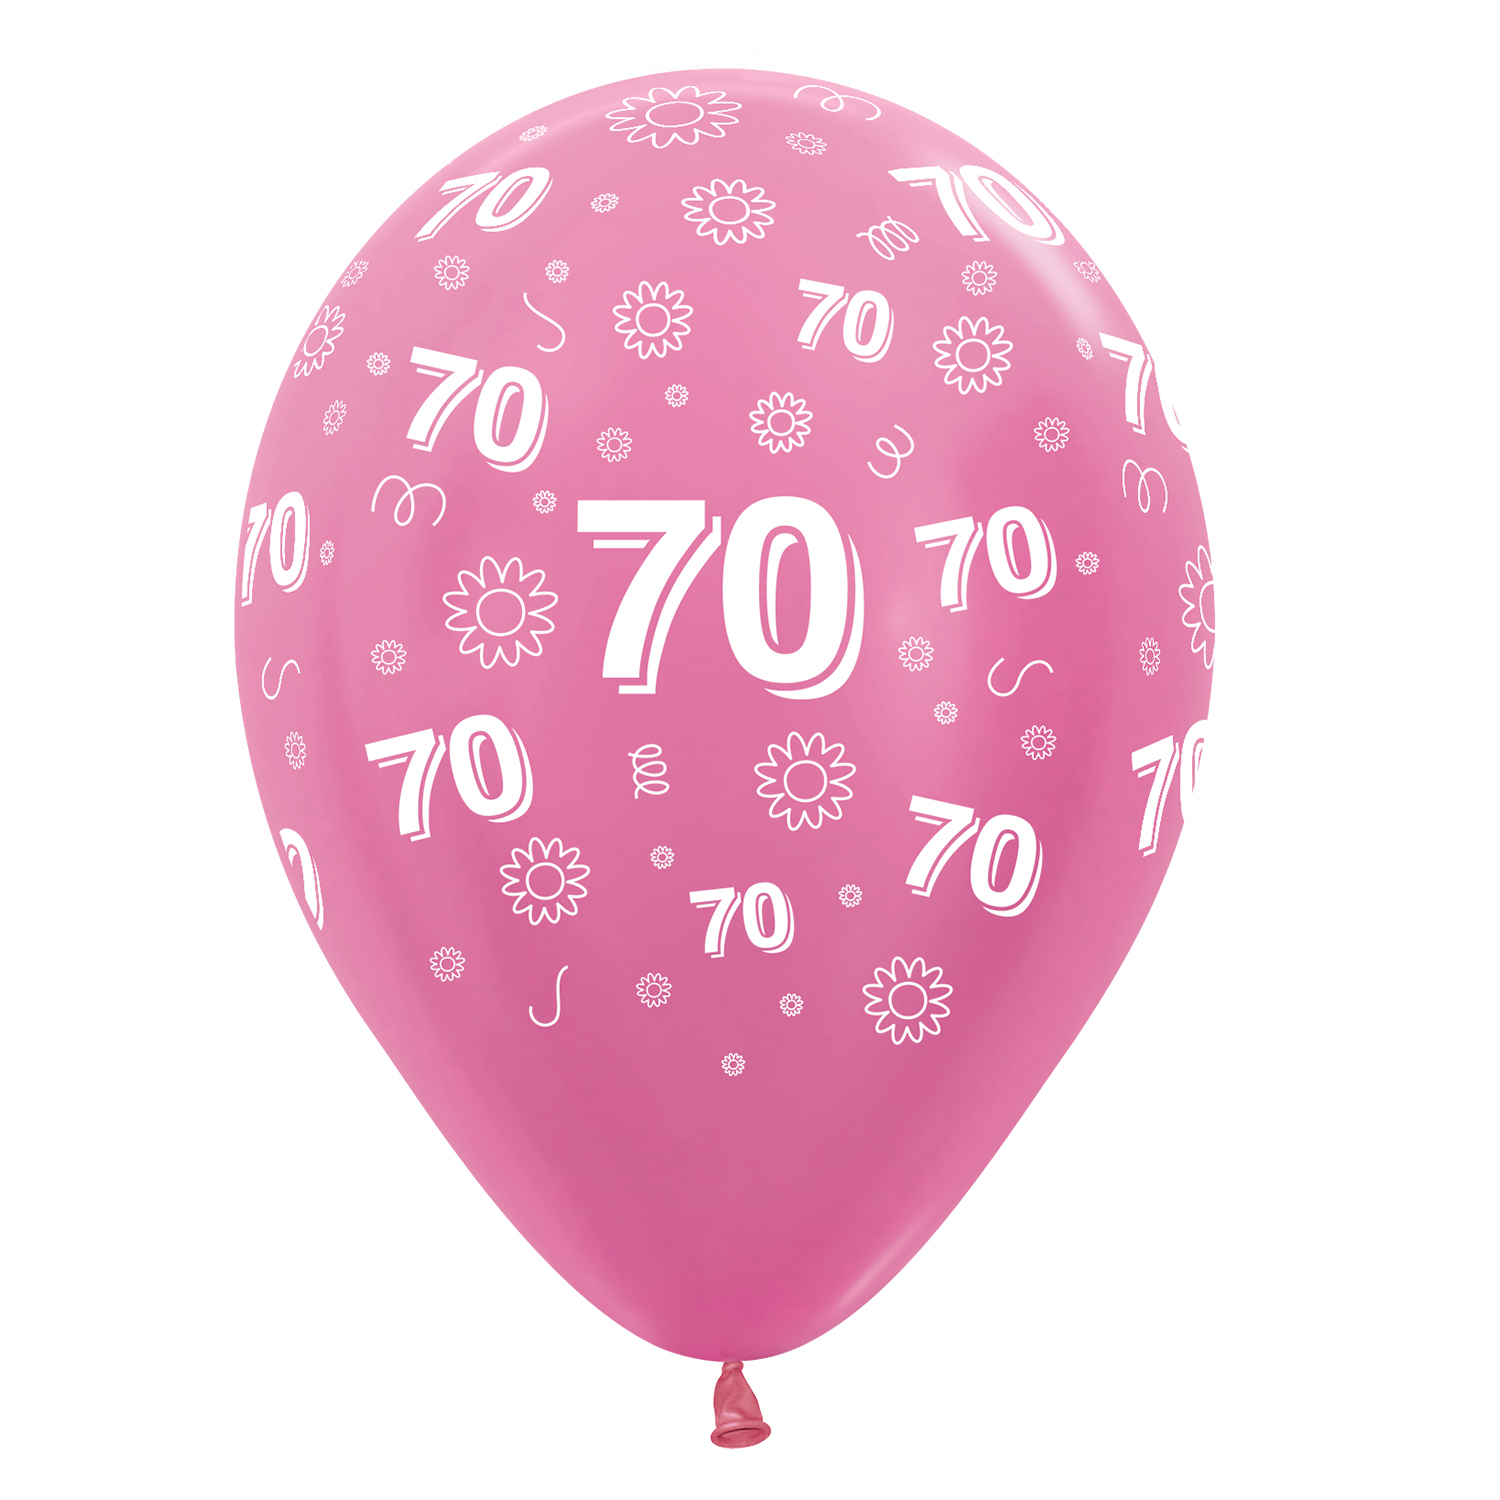 70th birthday flowers pink 412512 mix latex balloons 1230cm 25 70th birthday flowers pink 412512 mix latex balloons 1230cm 25 pc izmirmasajfo